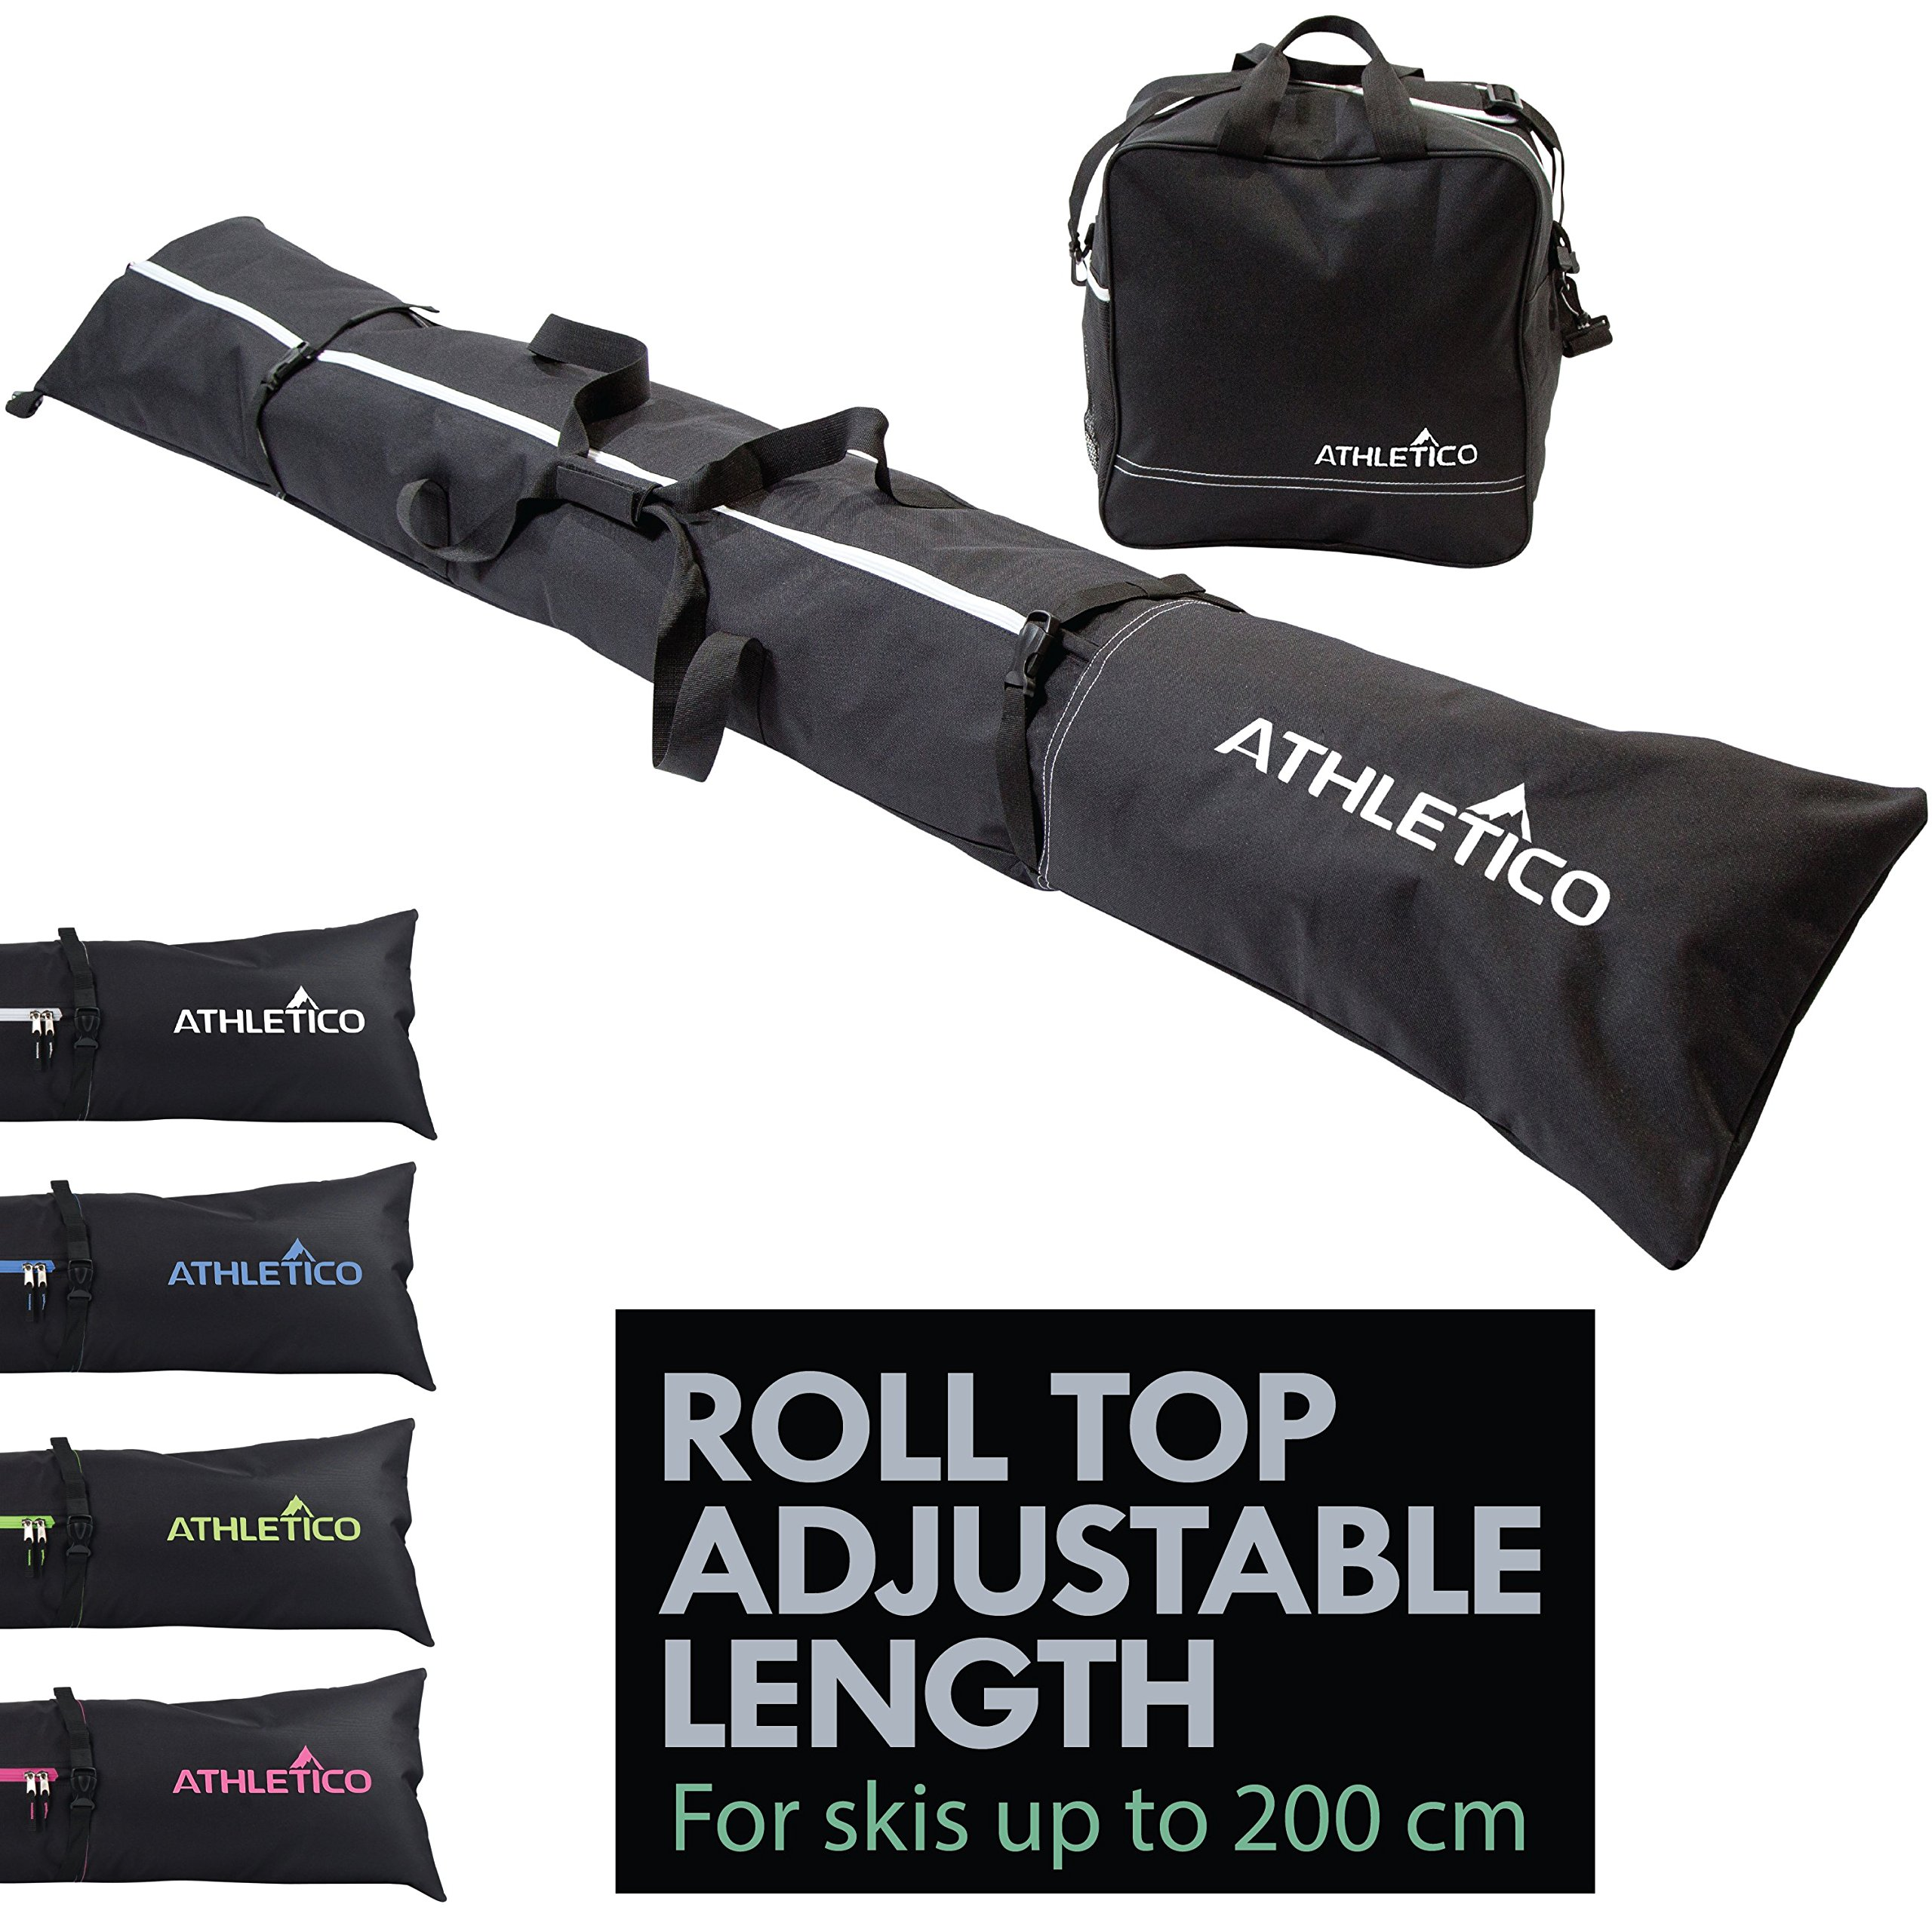 Athletico Two-Piece Ski and Boot Bag Combo | Store & Transport Skis Up to 200 cm and Boots Up to Size 13 | Includes 1 Ski Bag & 1 Ski Boot Bag (Black) by Athletico